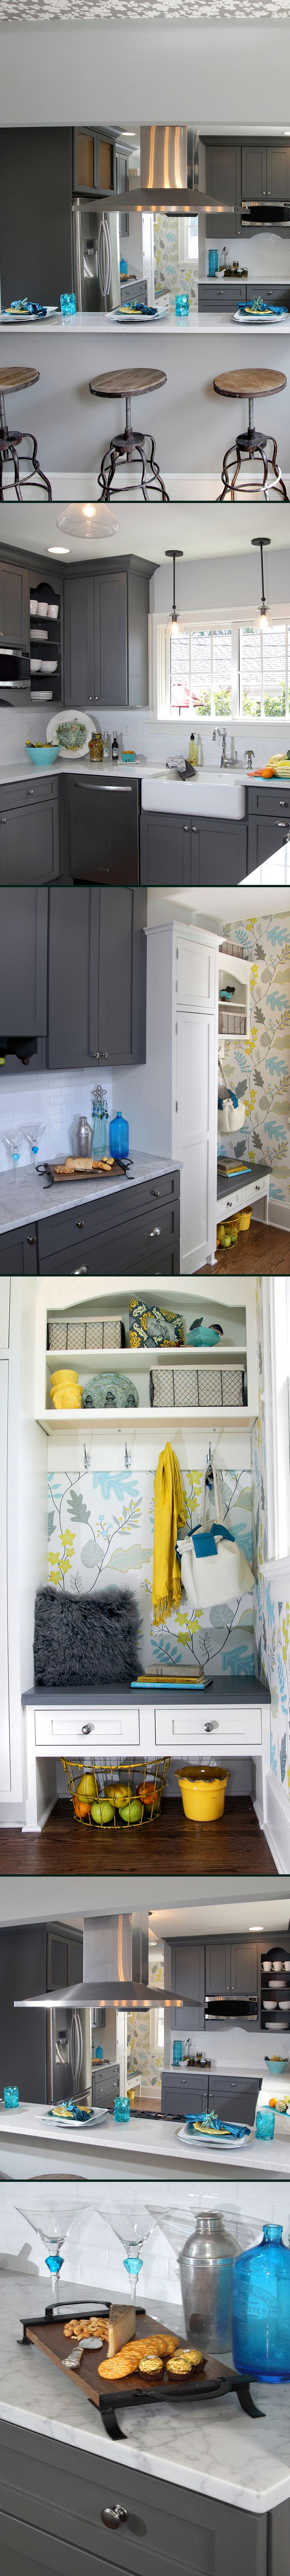 best 20 transitional kitchen products ideas on pinterest best 20 transitional kitchen products ideas on pinterest appliance transitional dishwashers and kitchen cabinet makers